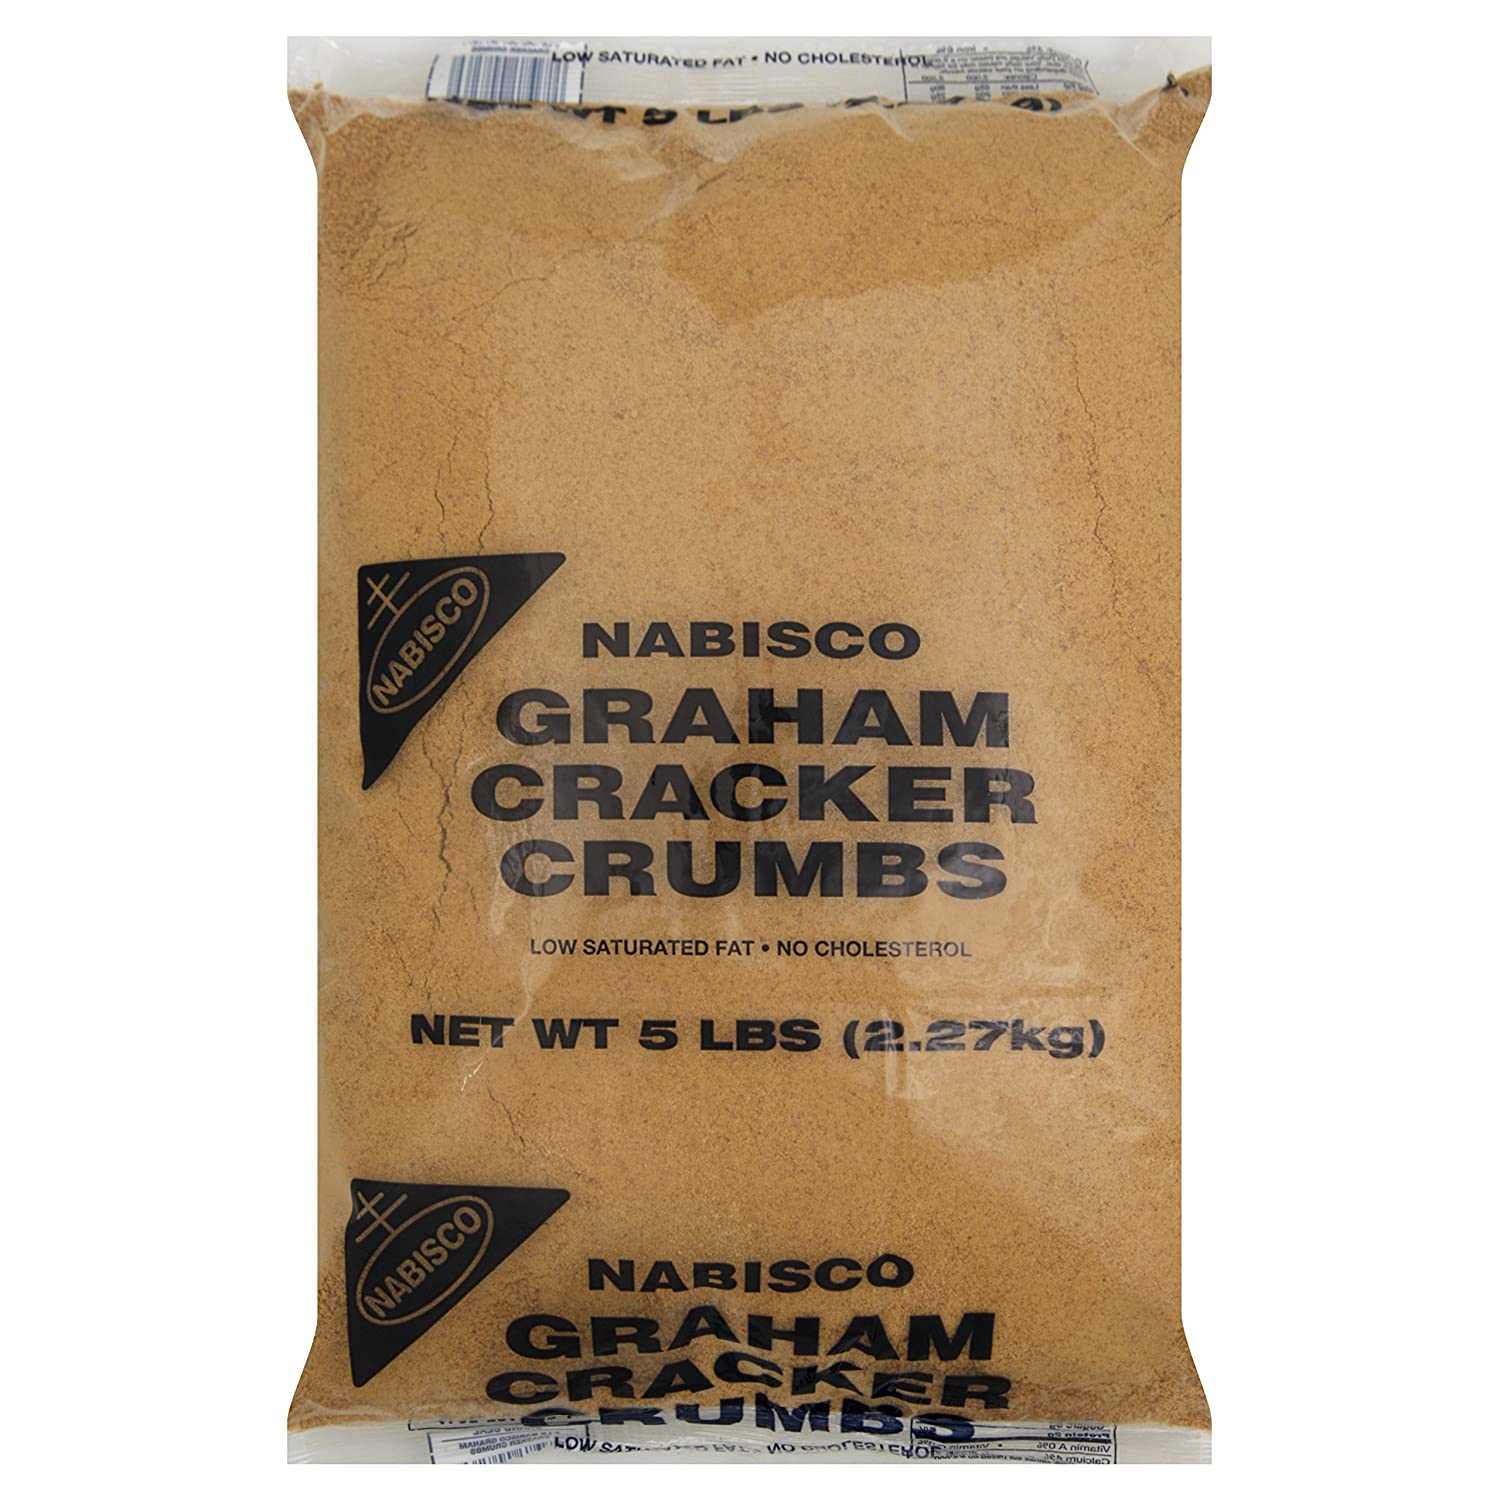 B00CHTVJK2 Honey Maid Graham Cracker Crumbs (80-Ounce Bag) 91BWXUJPrDL